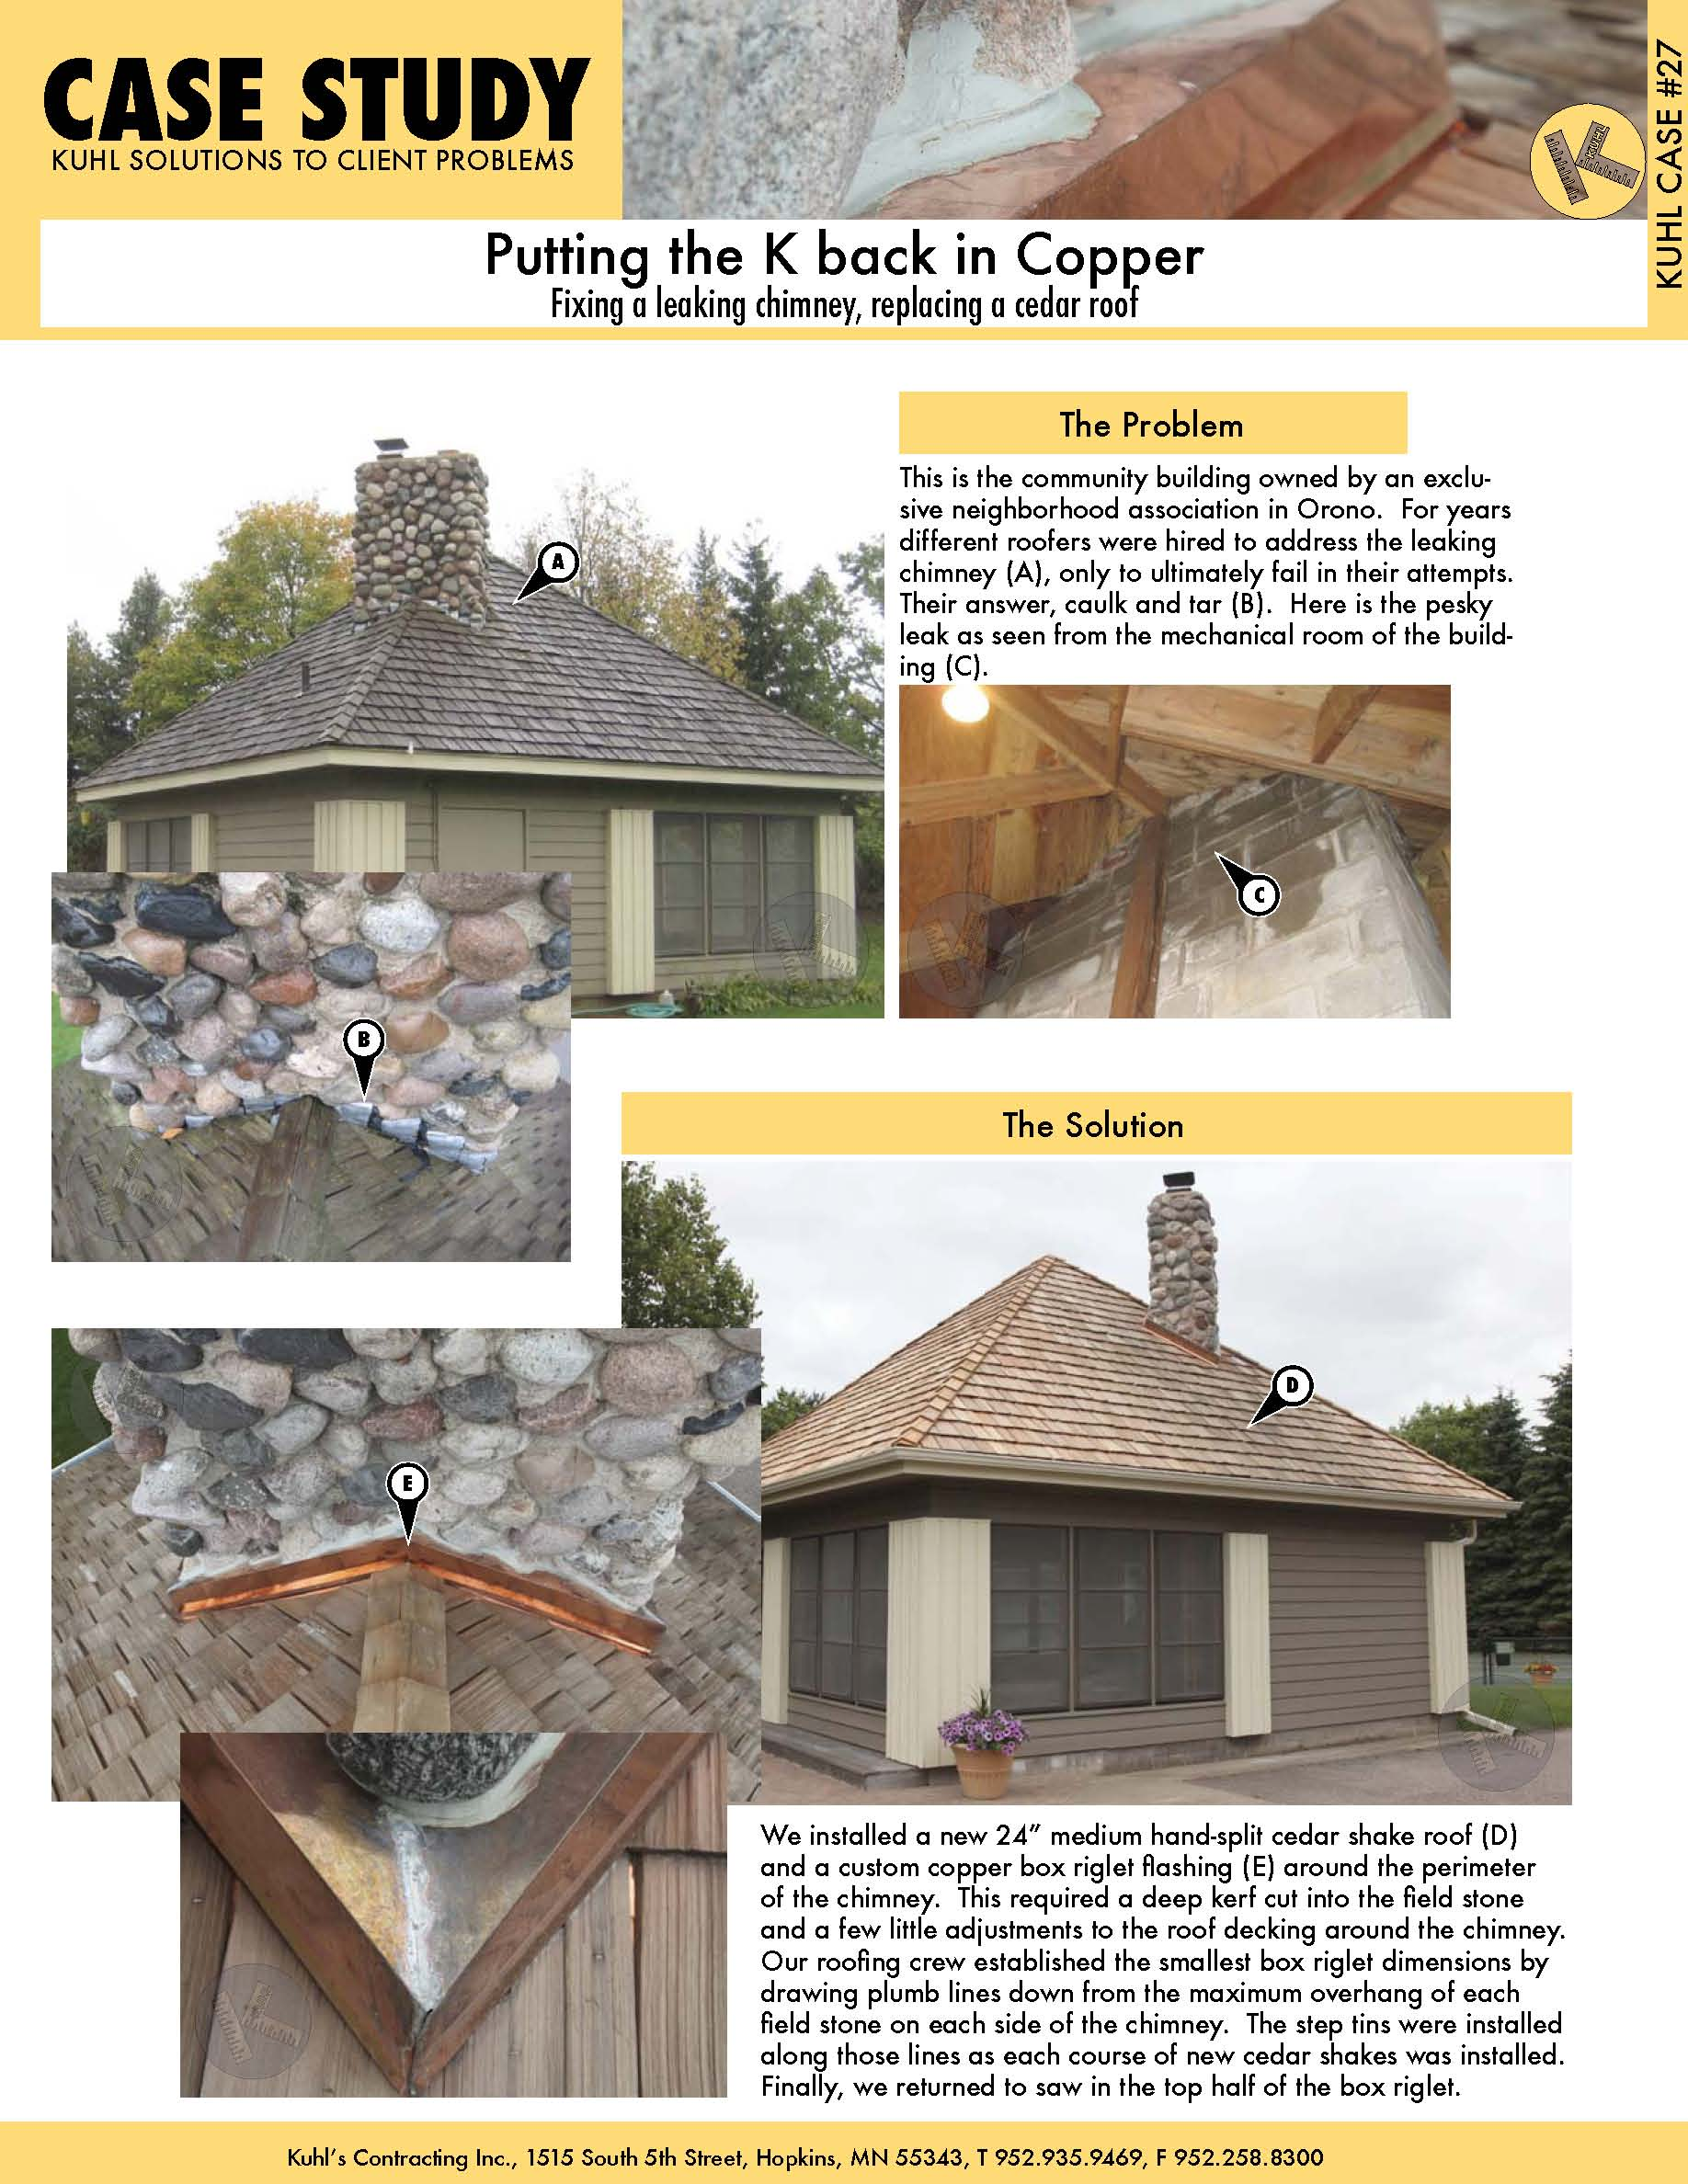 Putting the K Back in Copper: How to Fix a Leaking Stone Chimney